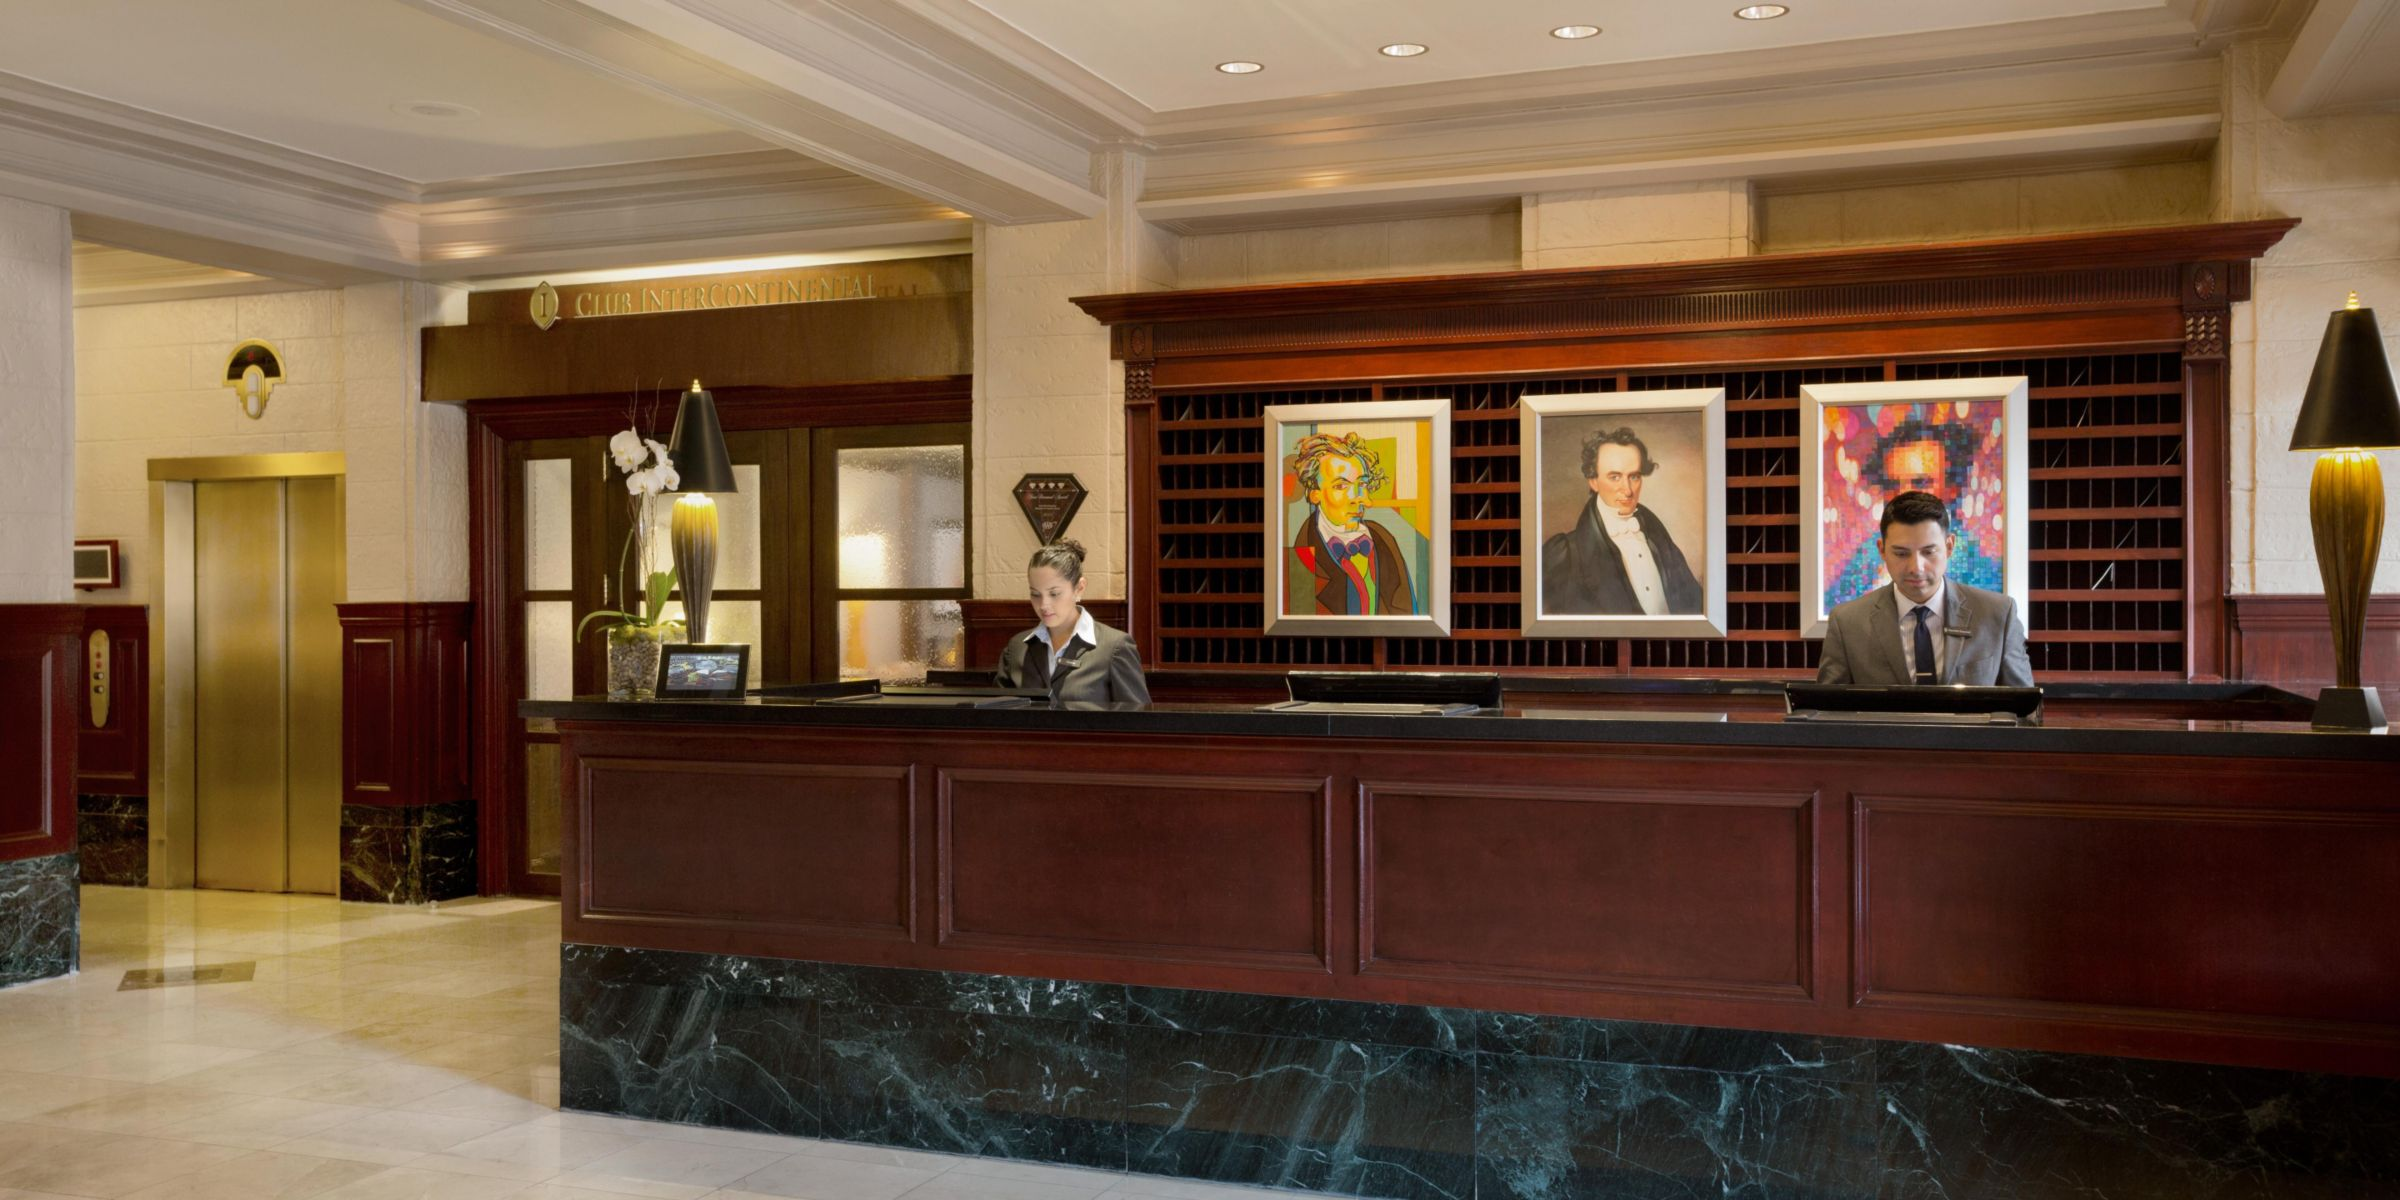 Concierge Welcome Desk Entrance Front Hotel Exterior